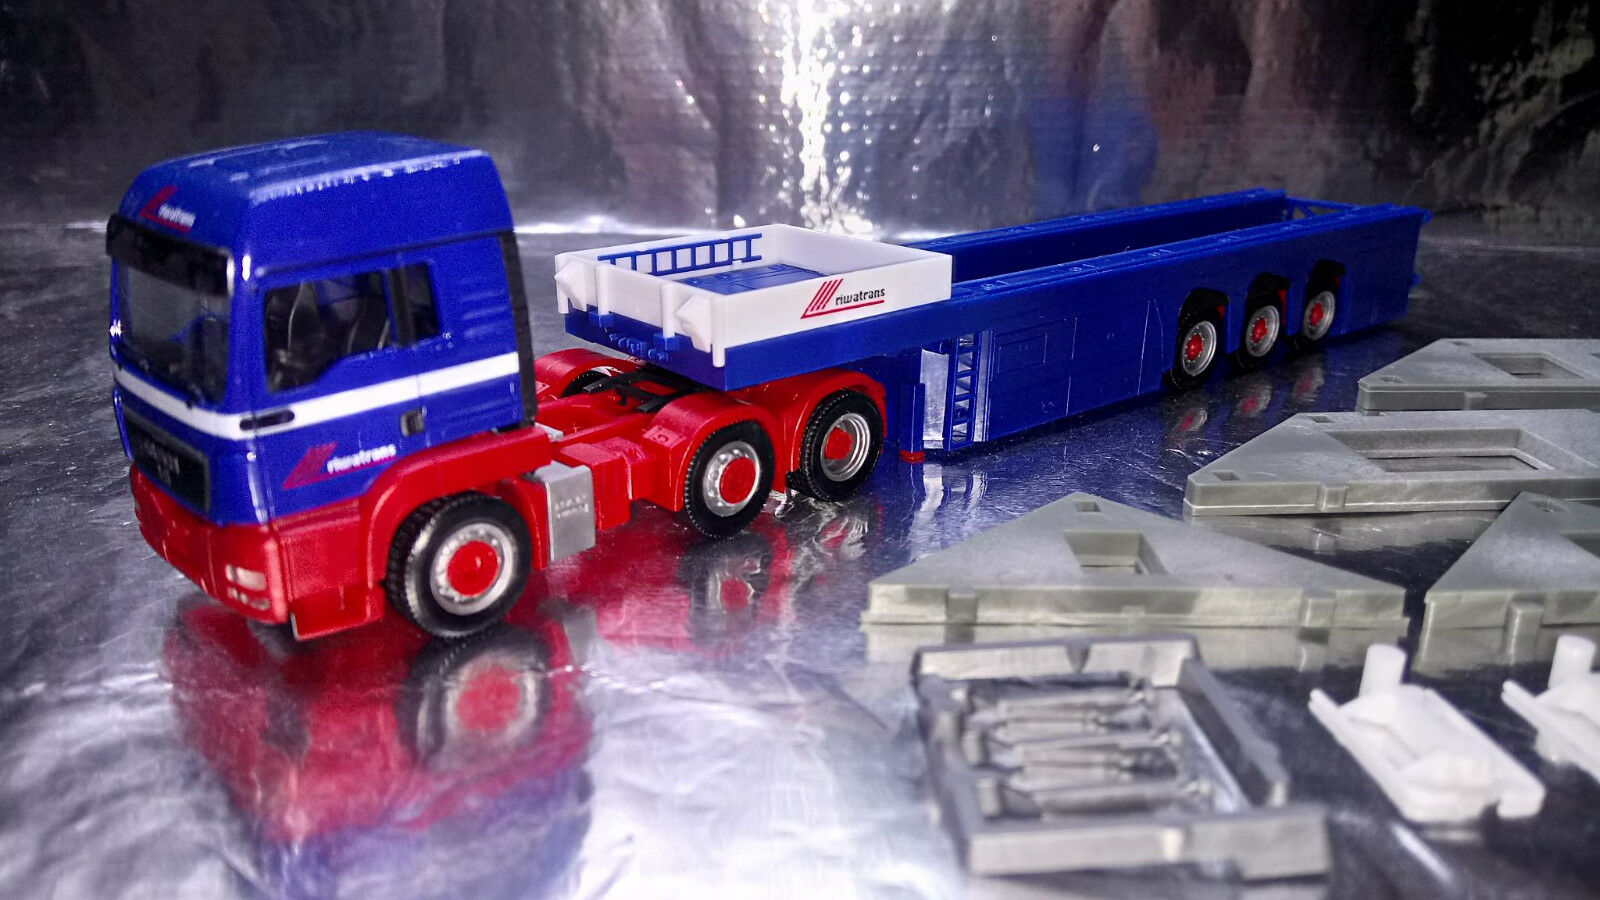 Herpa 155618 MAN TGS LX Cement Part Semitrailer + load Riwatrans 1 87 Scale